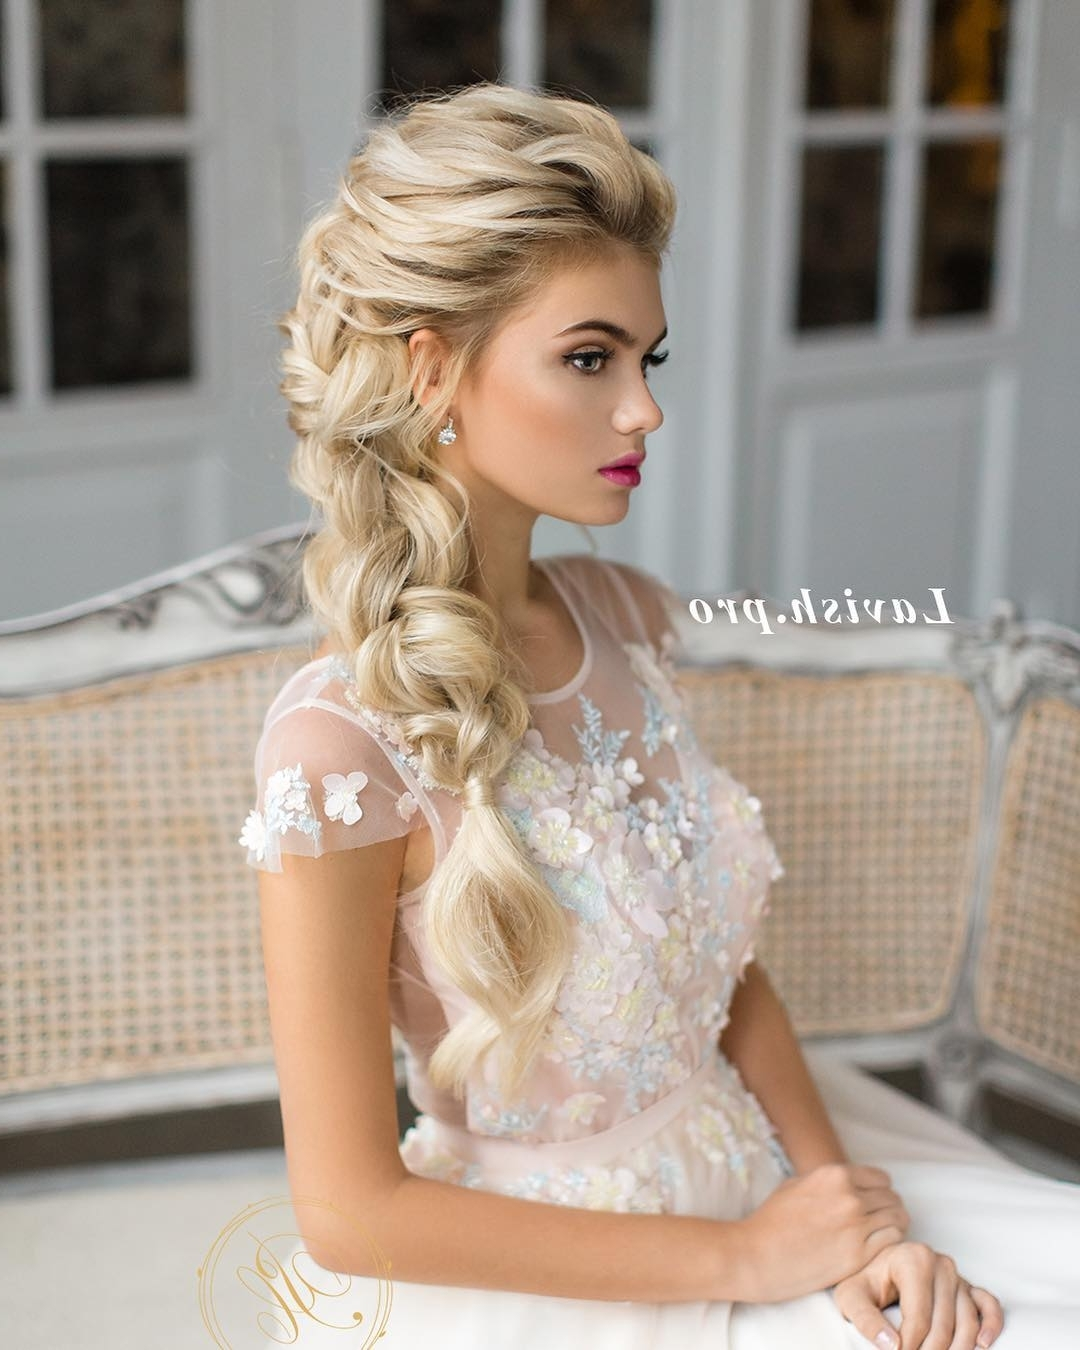 10 Lavish Wedding Hairstyles For Long Hair – Wedding Hairstyle Ideas Regarding Fashionable White Wedding Blonde Hairstyles (View 3 of 20)